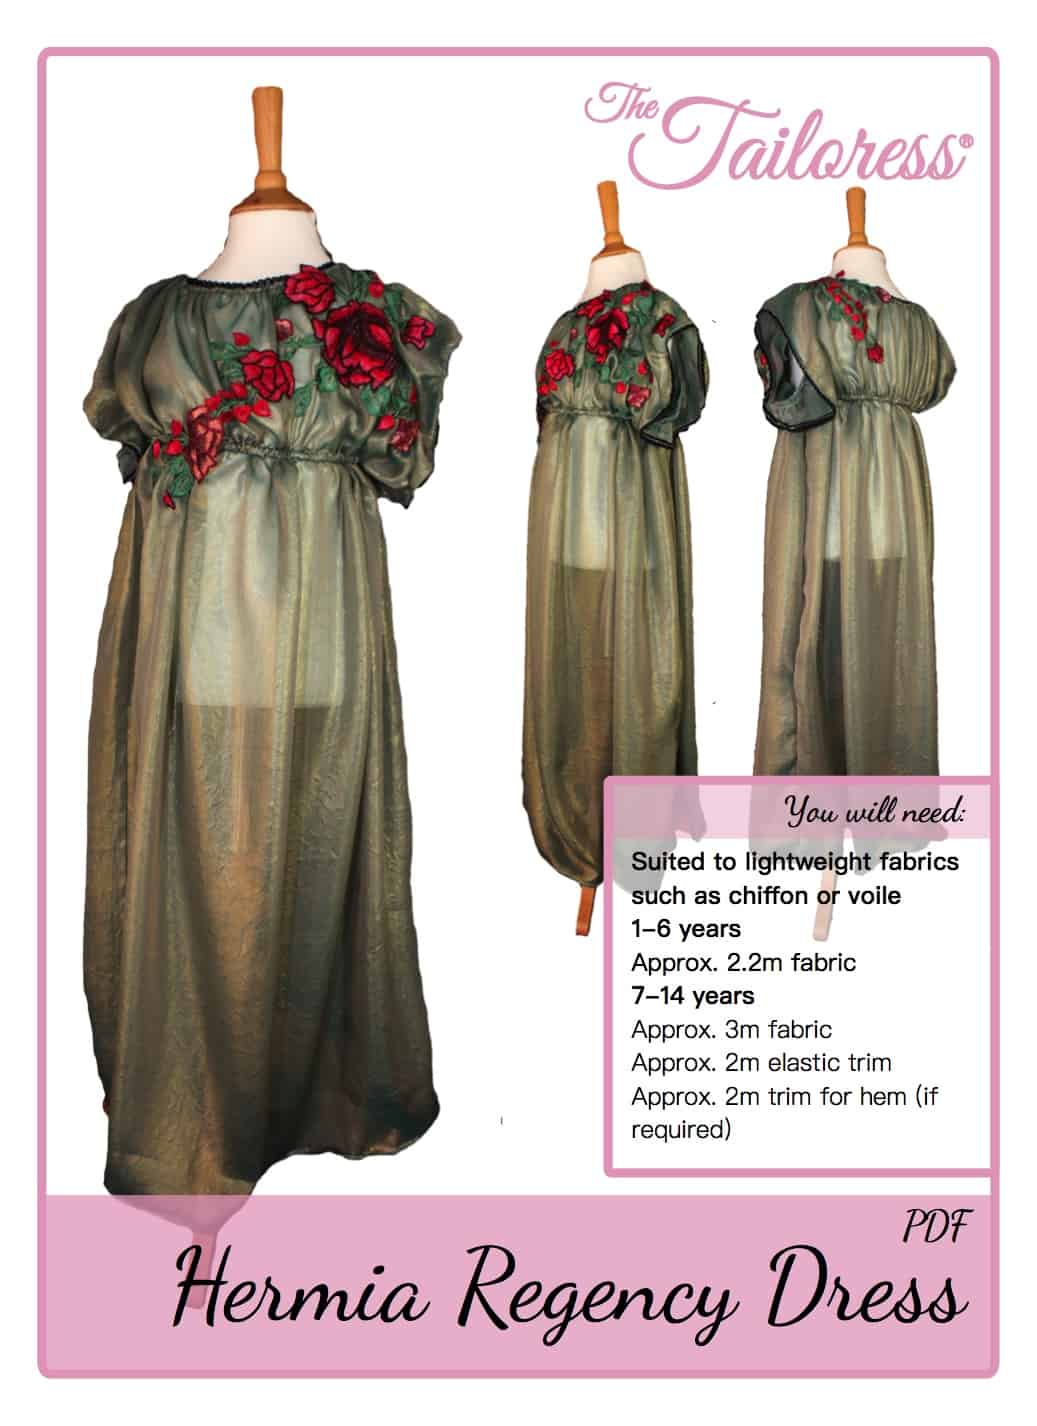 The Tailoress PDF Sewing Patterns - Hermia Regency Dress / Costume Tutorial